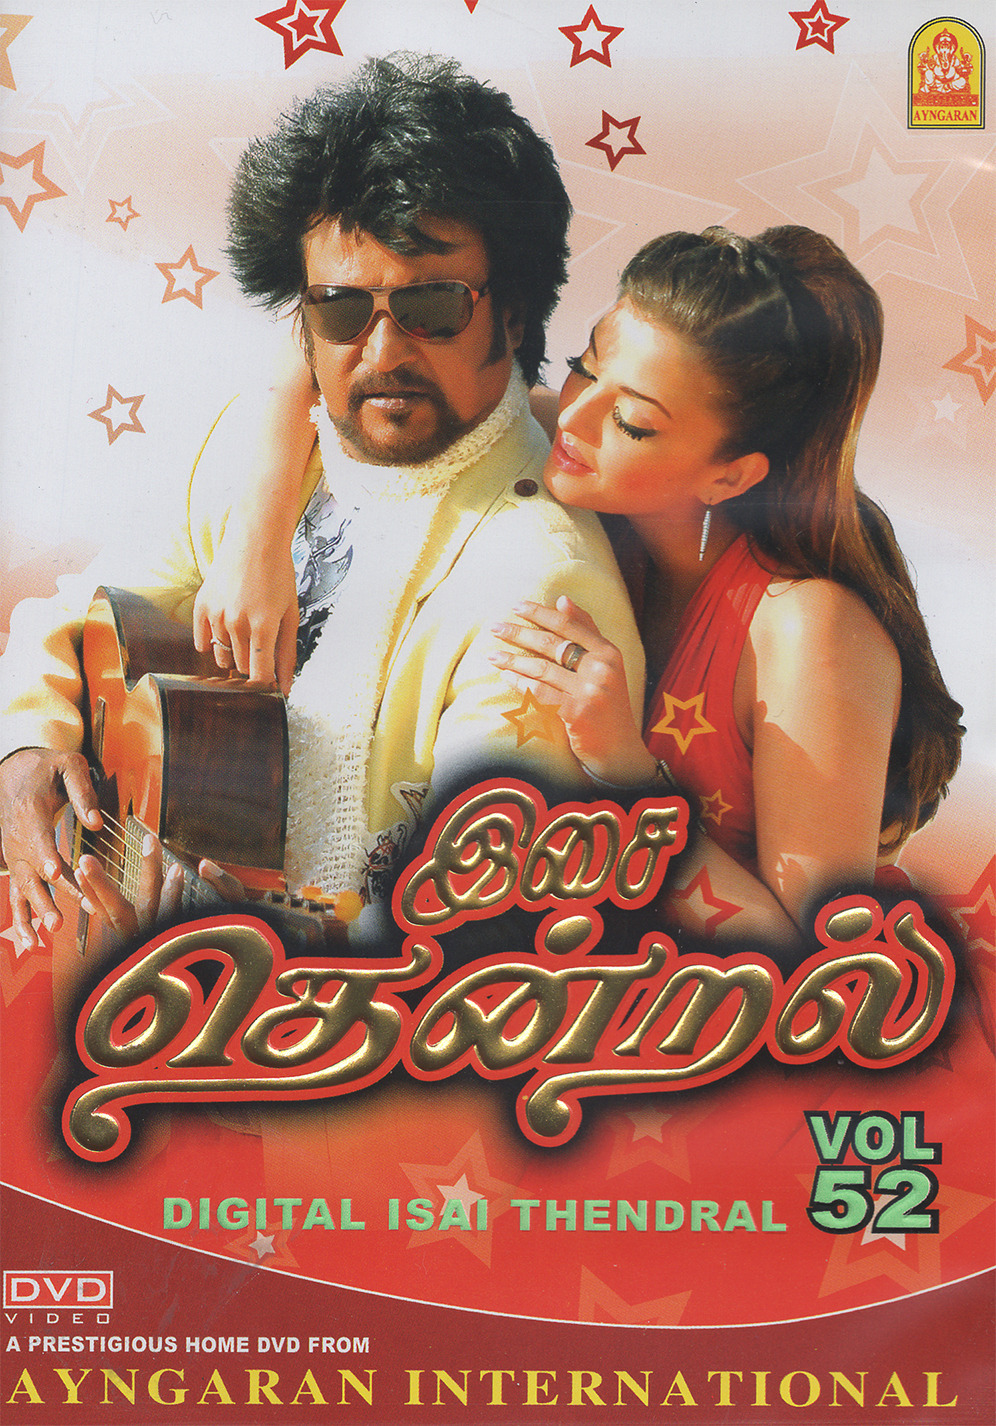 Digital Isai Thendral Vol 52